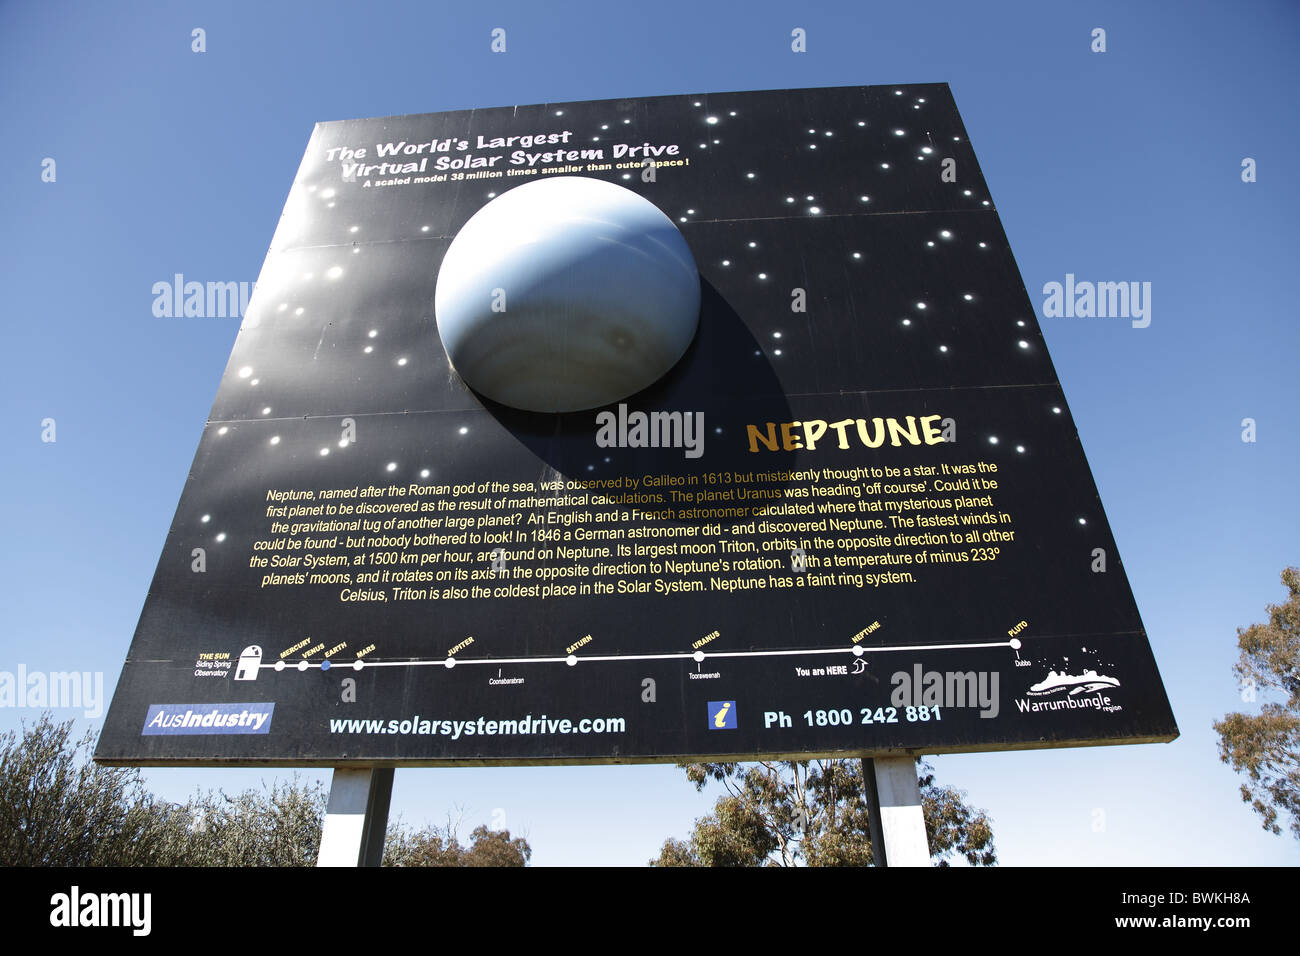 Australia, New South Wales, Coonabarabran, Virtual Solar System, Model of the Planet Neptune - Stock Image